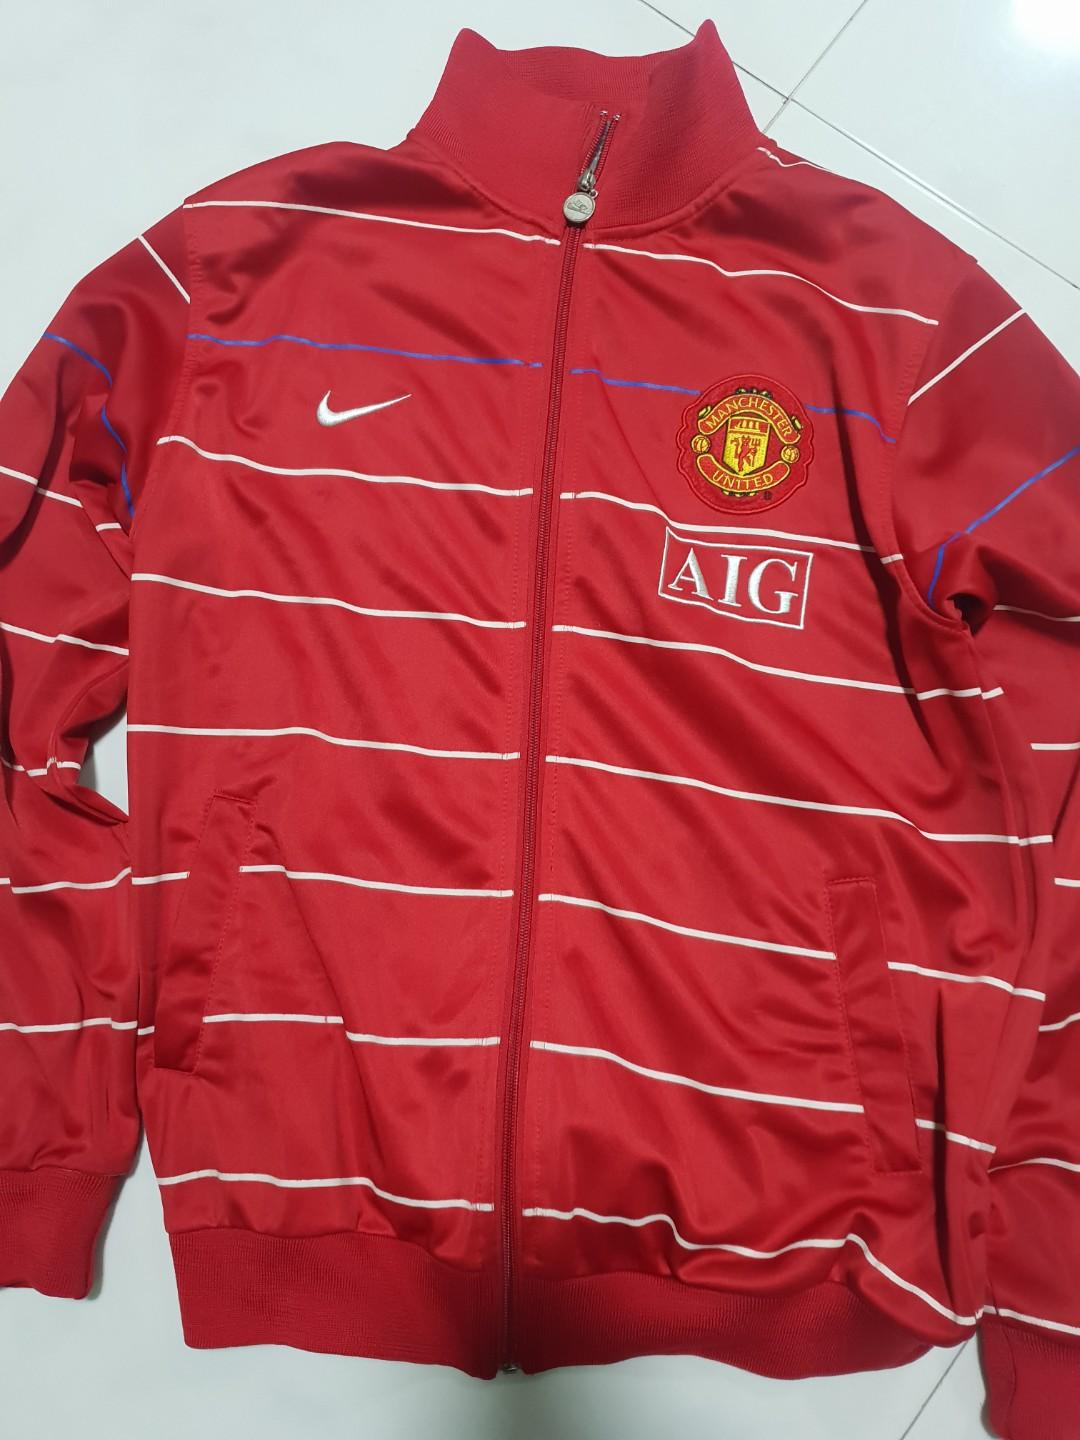 best website 5ac3e 08229 Manchester United Jacket, Men's Fashion, Clothes, Tops on ...